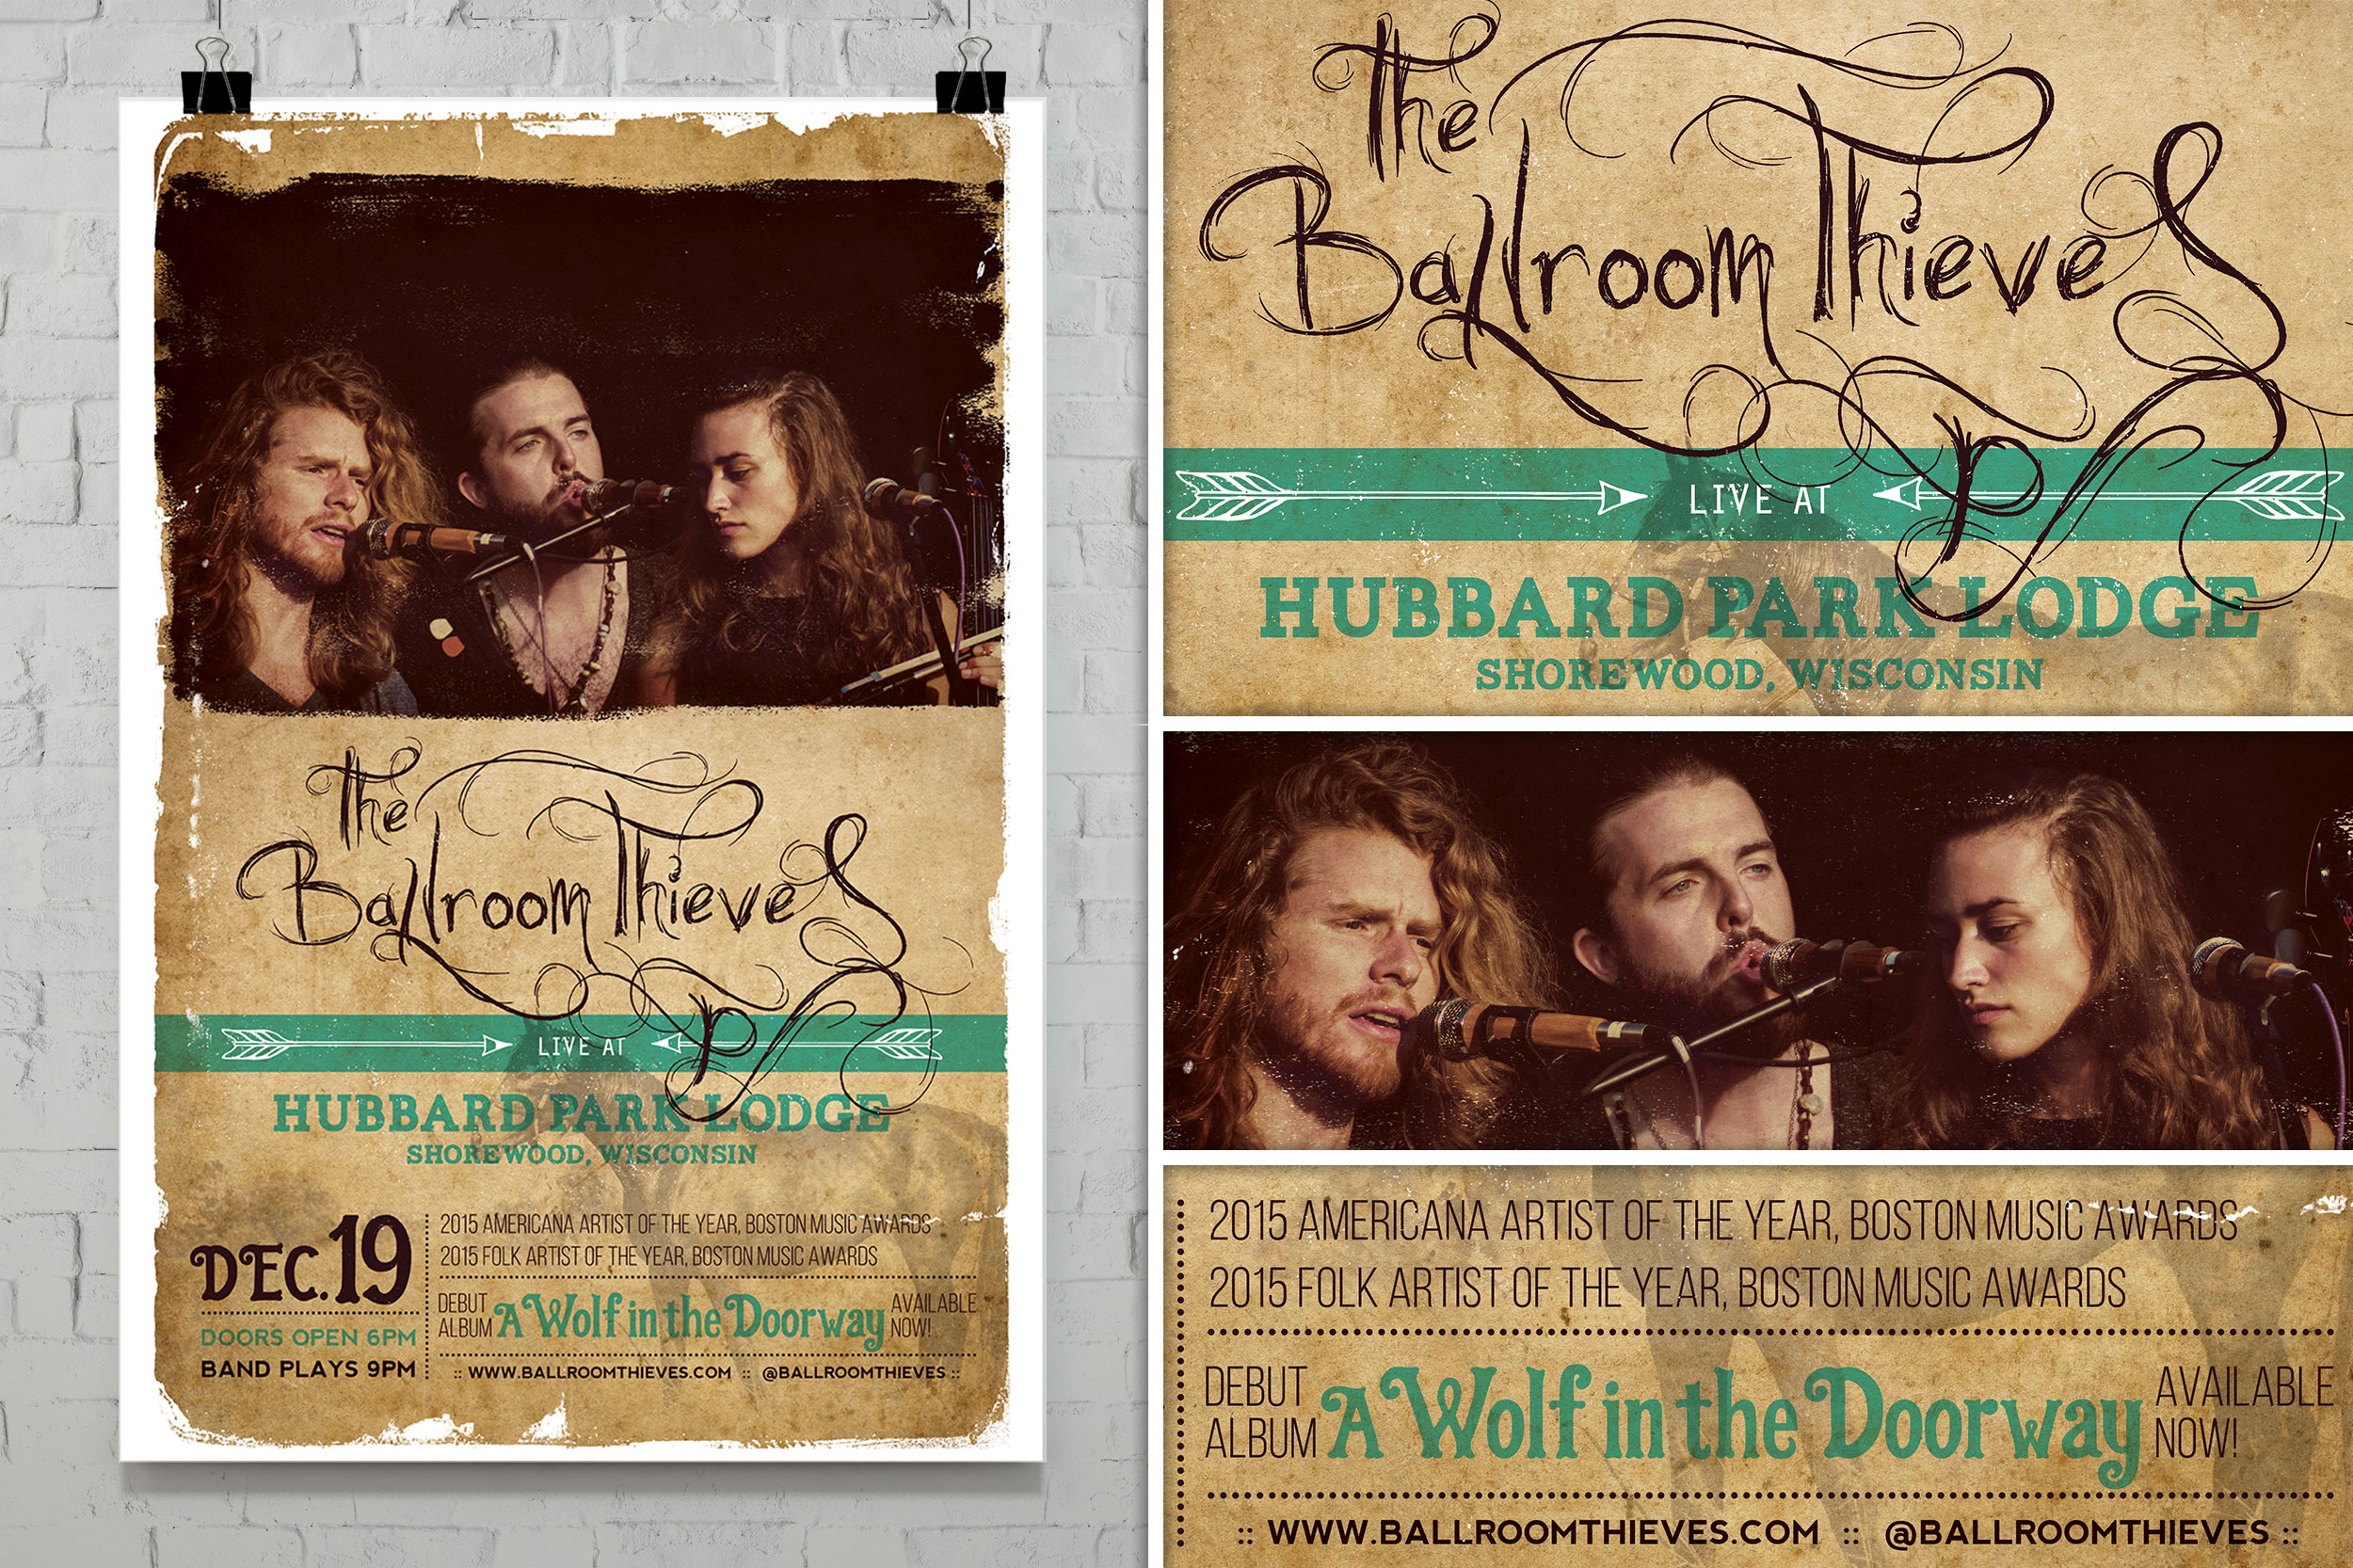 Ballroom Thieves Concert Poster (2015)